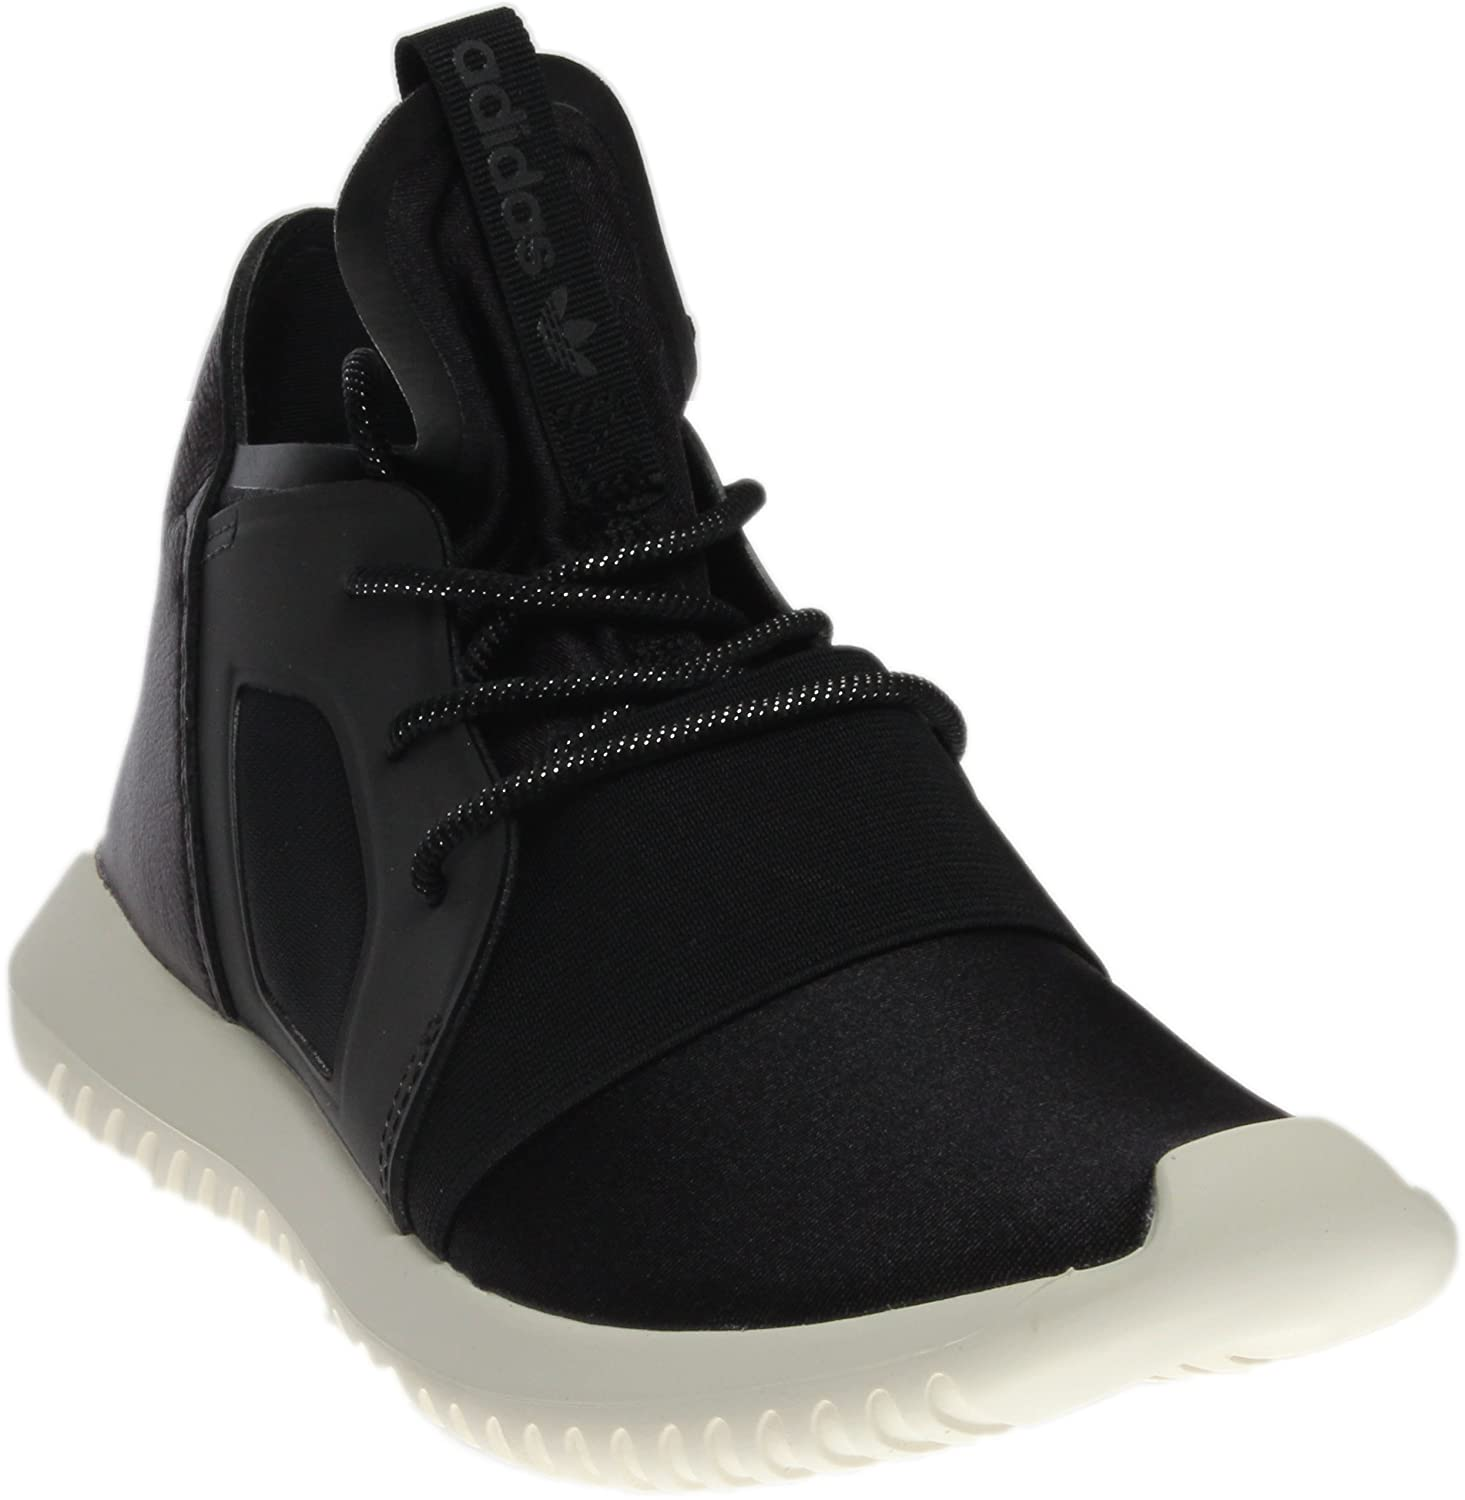 Cheap Adidas for Men: Tubular Invader Strap Sneakers Eckington School